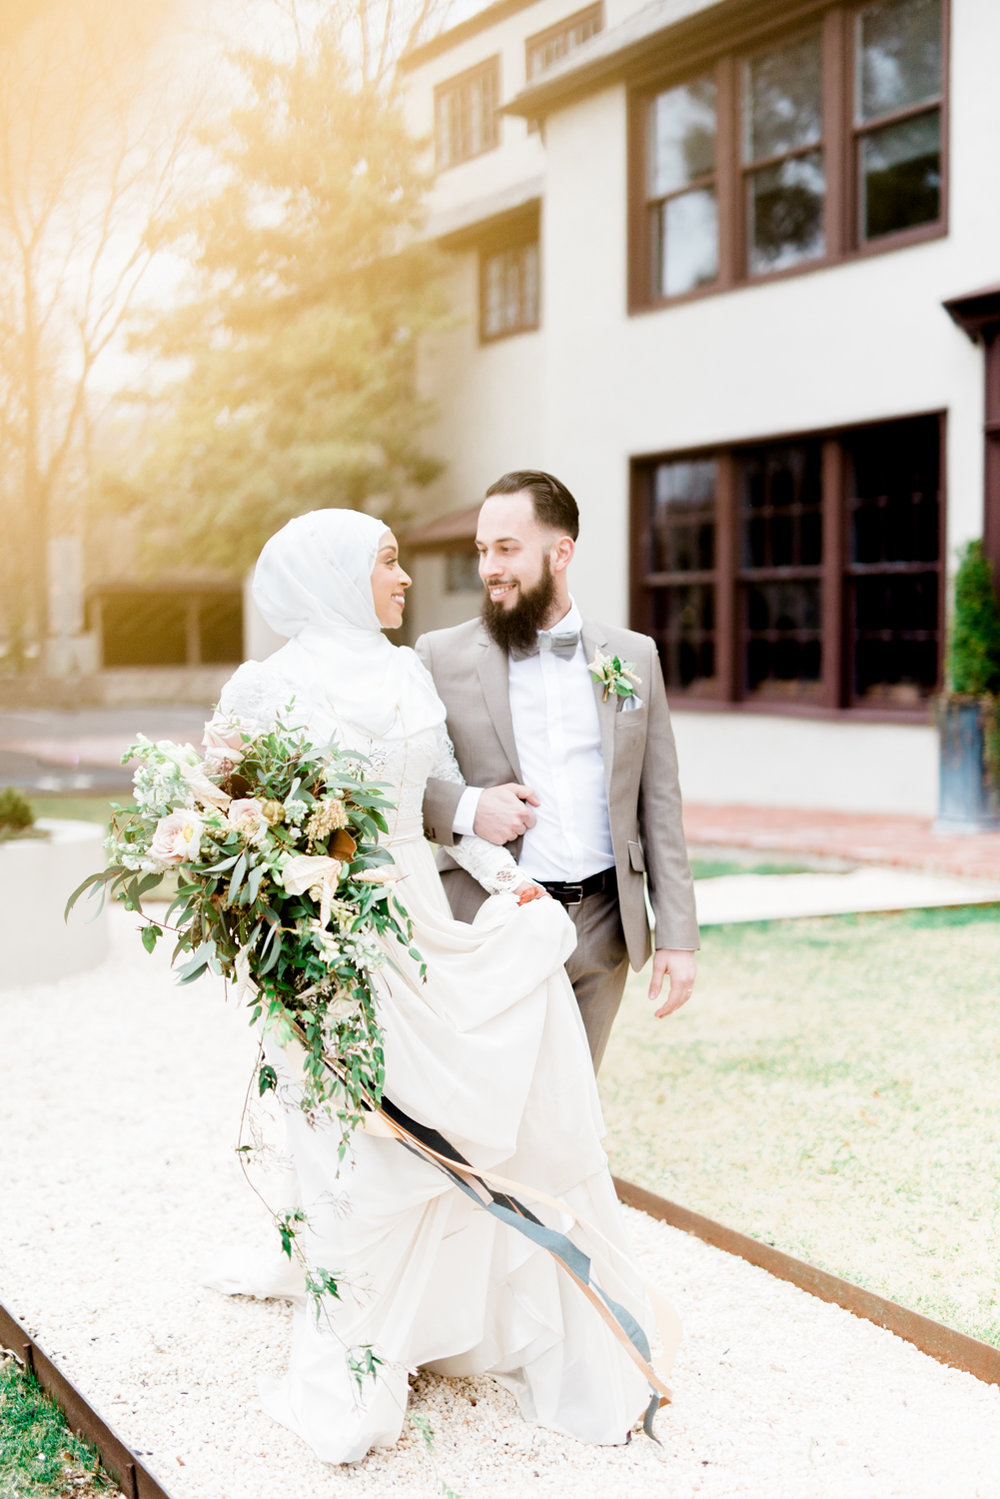 haley-richter-photography-hotel-du-village-wedding-new-hope-pa-muslim-66.jpg